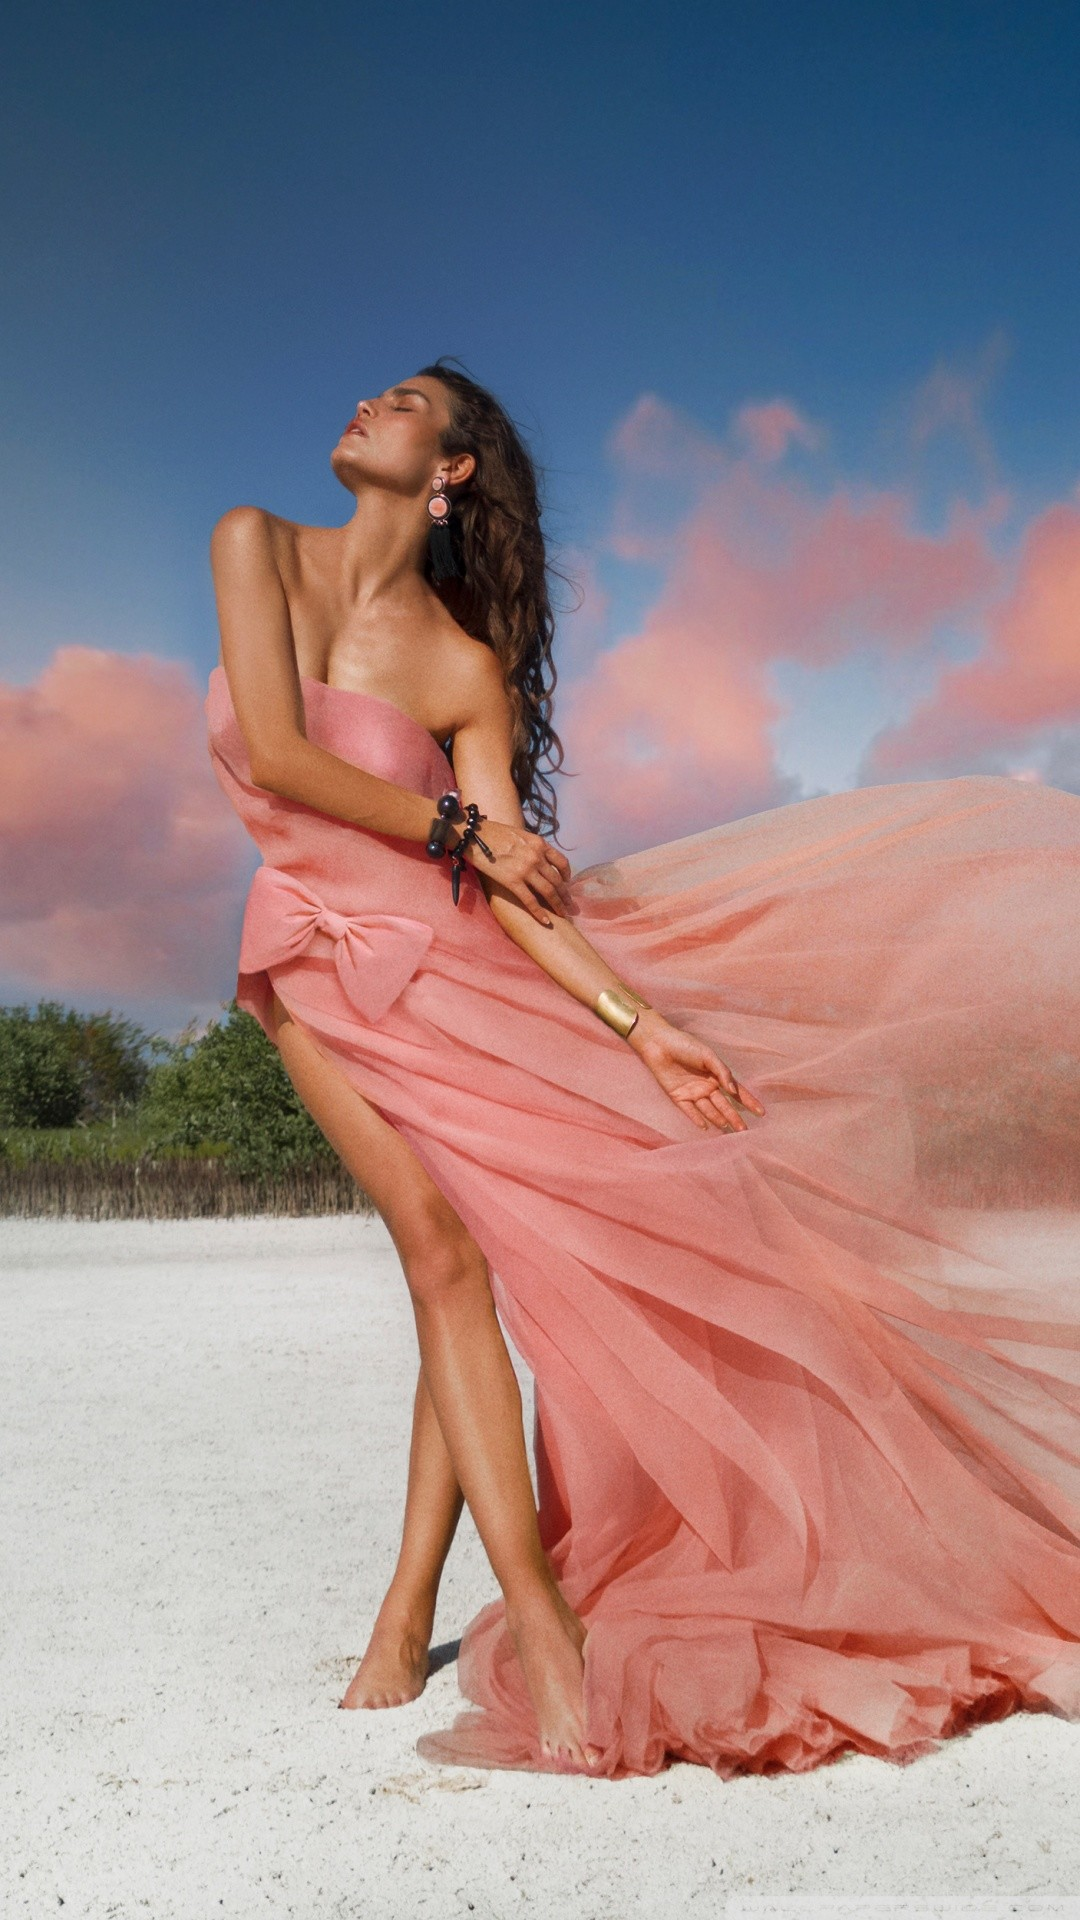 Free A Woman in a Light Pink Dress, Pink Clouds phone wallpaper by teresa80